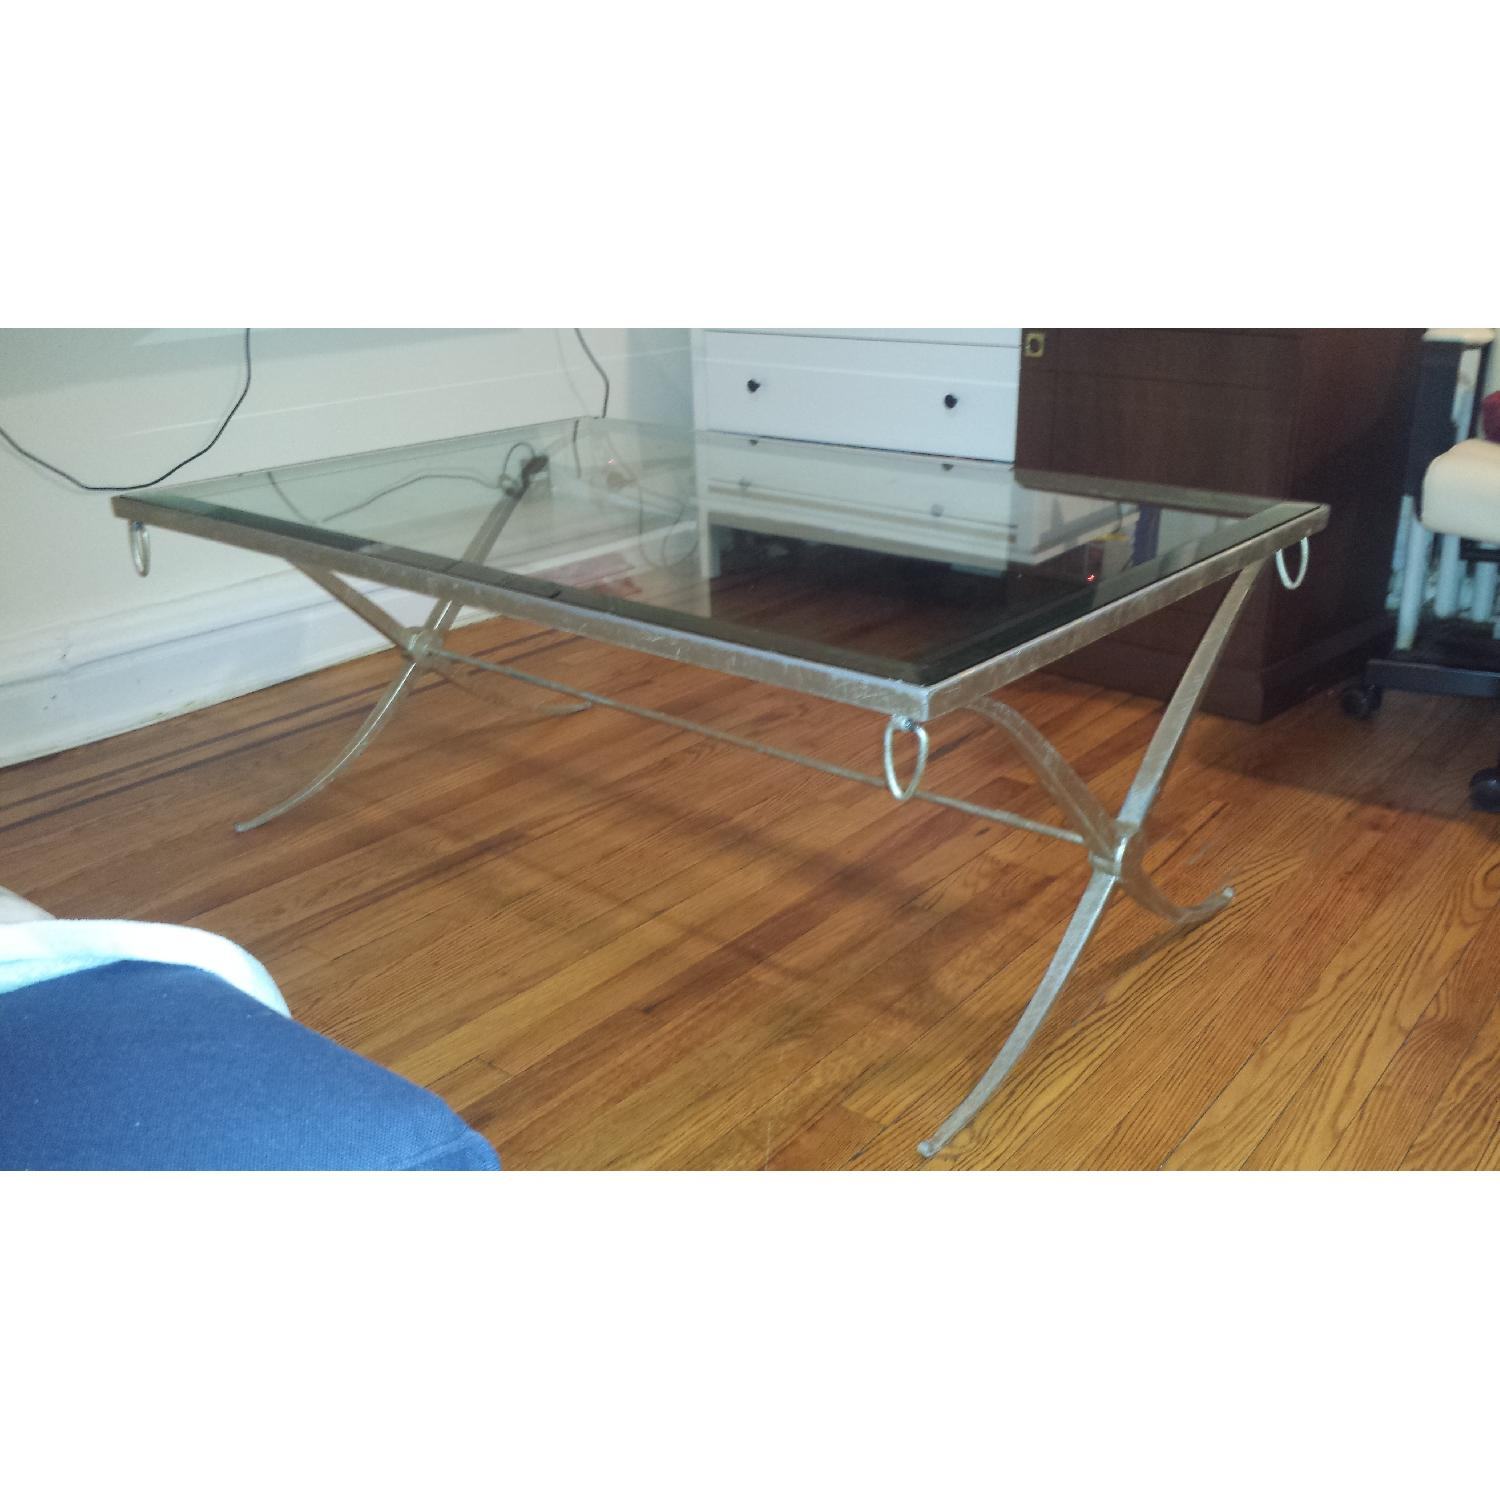 Baker Barbara Barry Collection Glass & Iron Coffee Table - image-1